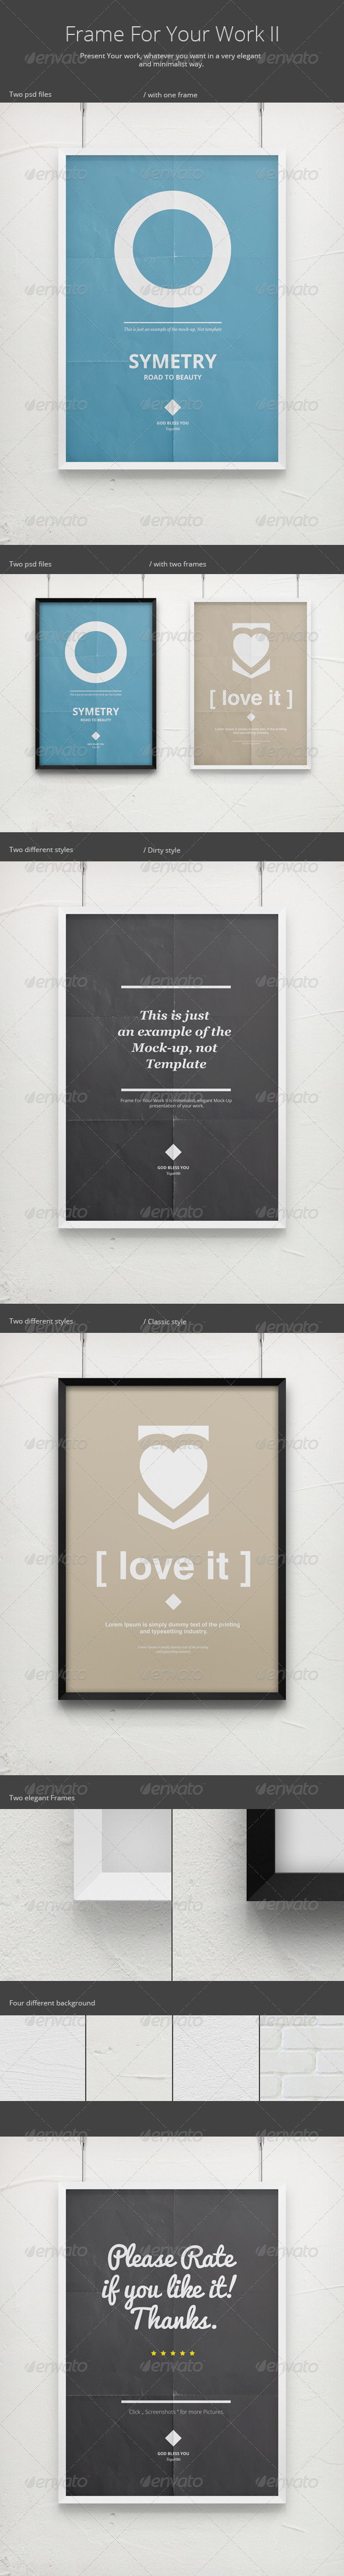 Frame For Your Work 2 - Poster Mock-Up - Posters Print